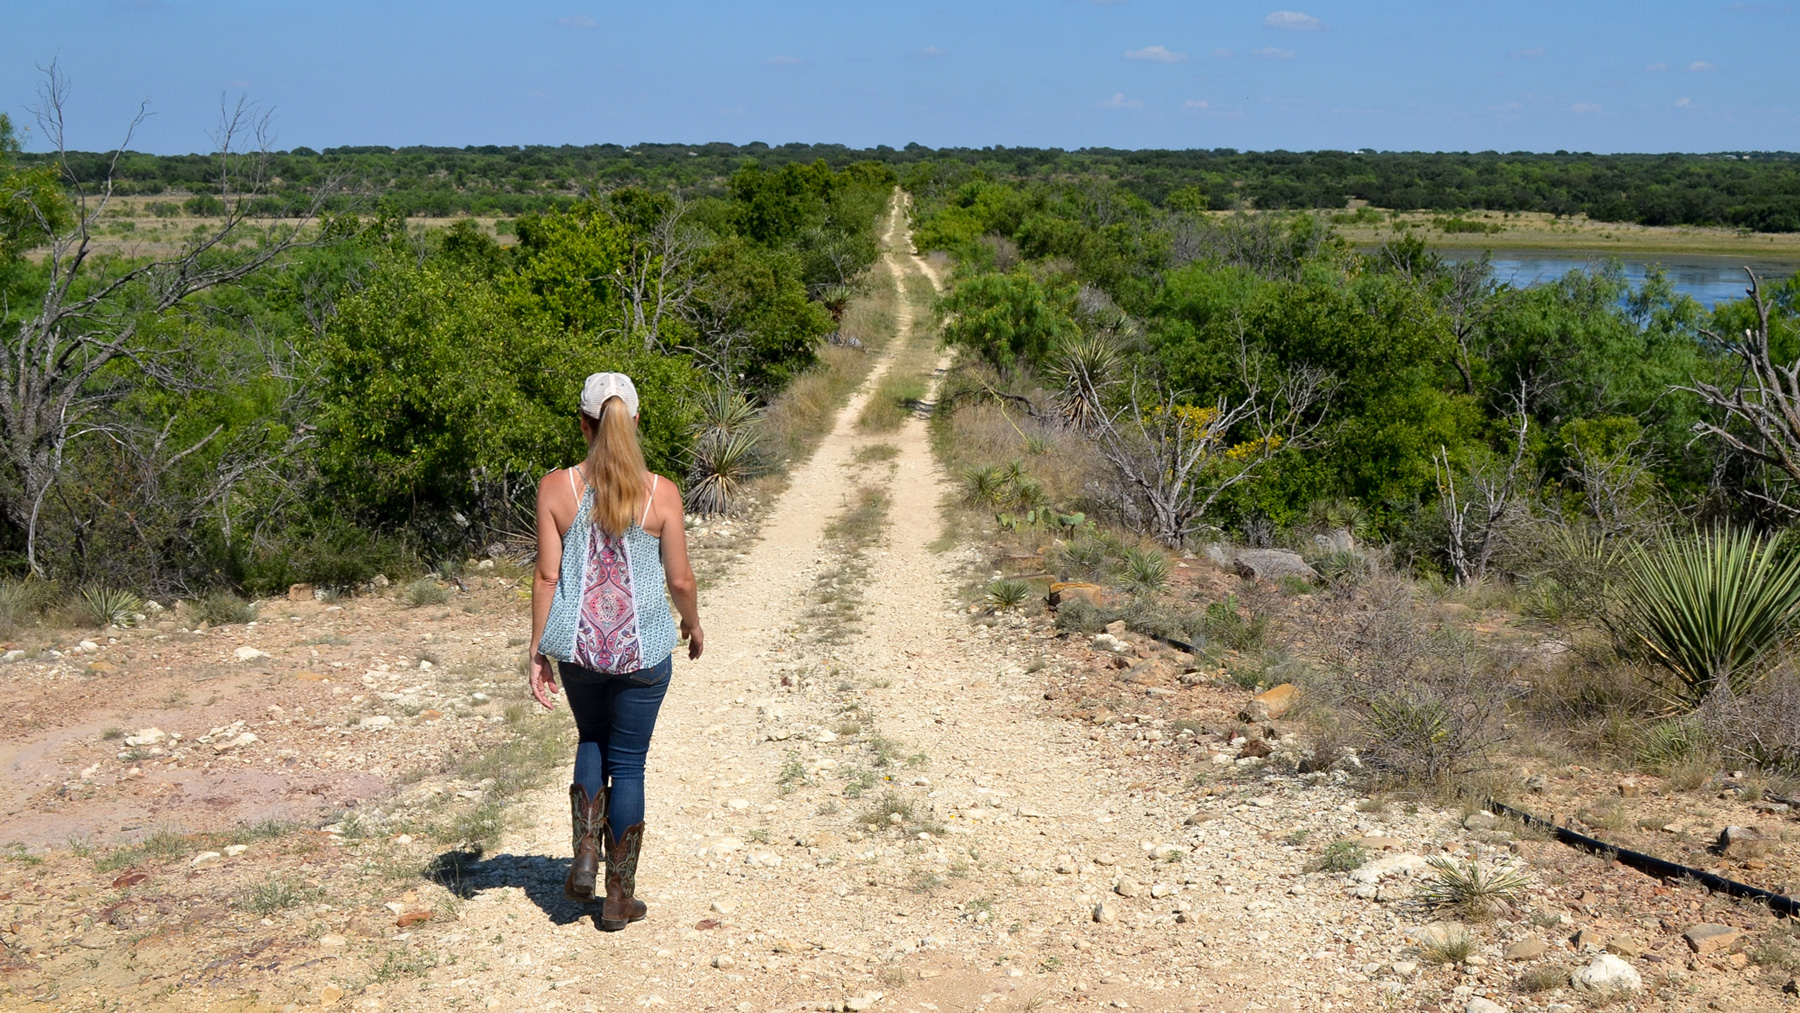 Beef farmer Amy Greer walks along the property line of her ranch in Brady, Texas. Her family is working with city officials to prepare easements for a new water system. (Elizabeth Sims/News21)